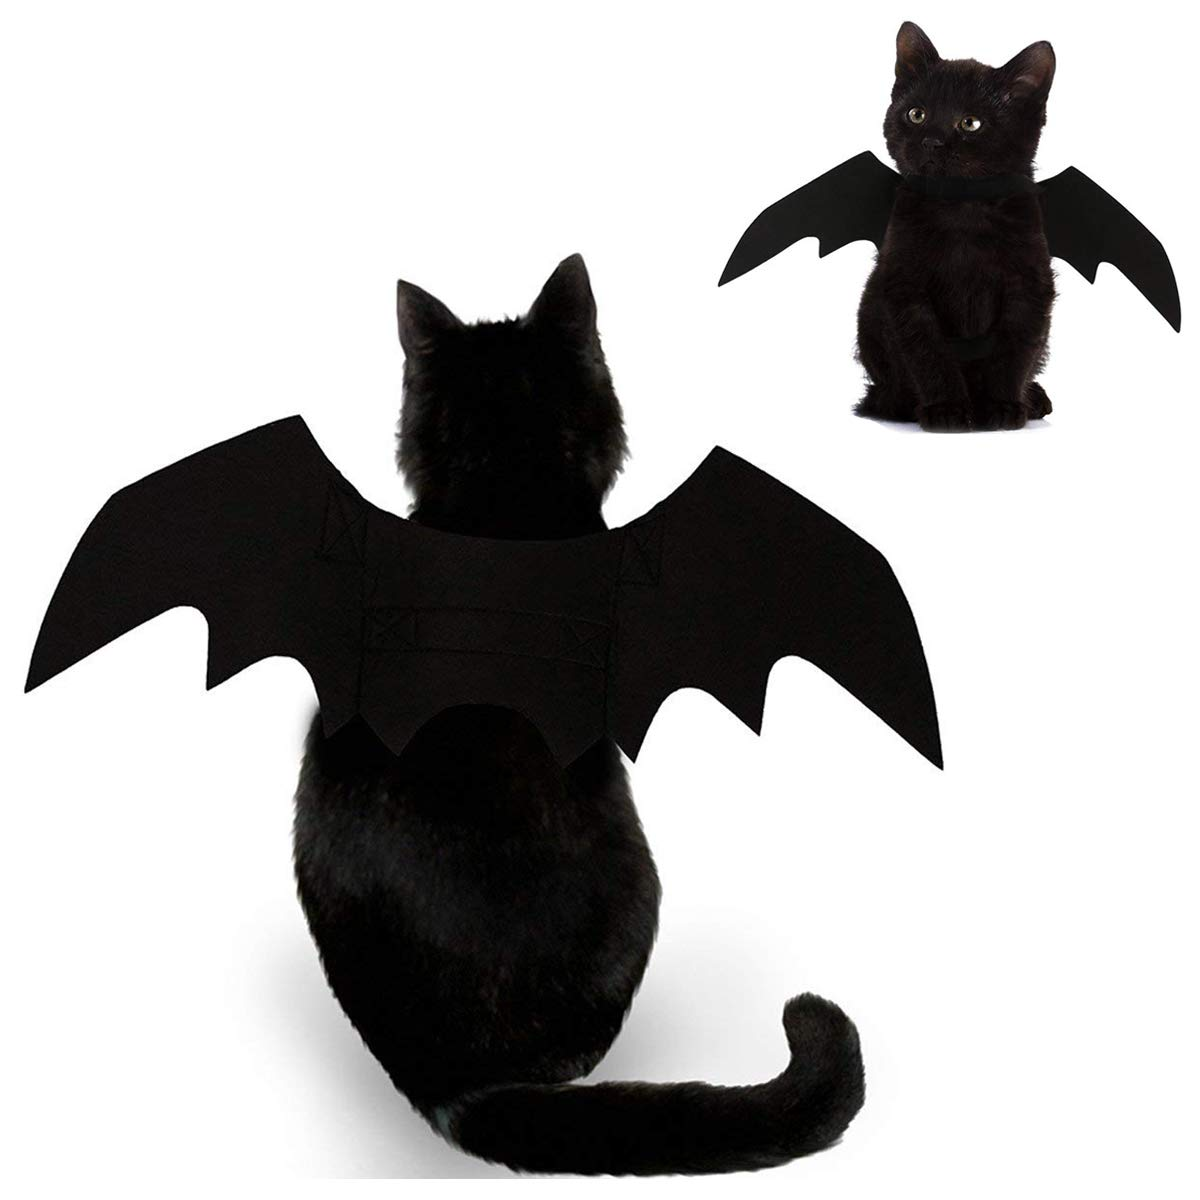 Foogles Cat Halloween Costume Black Cat Bat Wings Cosplay Pet Costumes Apparel for Cat Small Dogs Puppy for Cat Dress Up Accessories